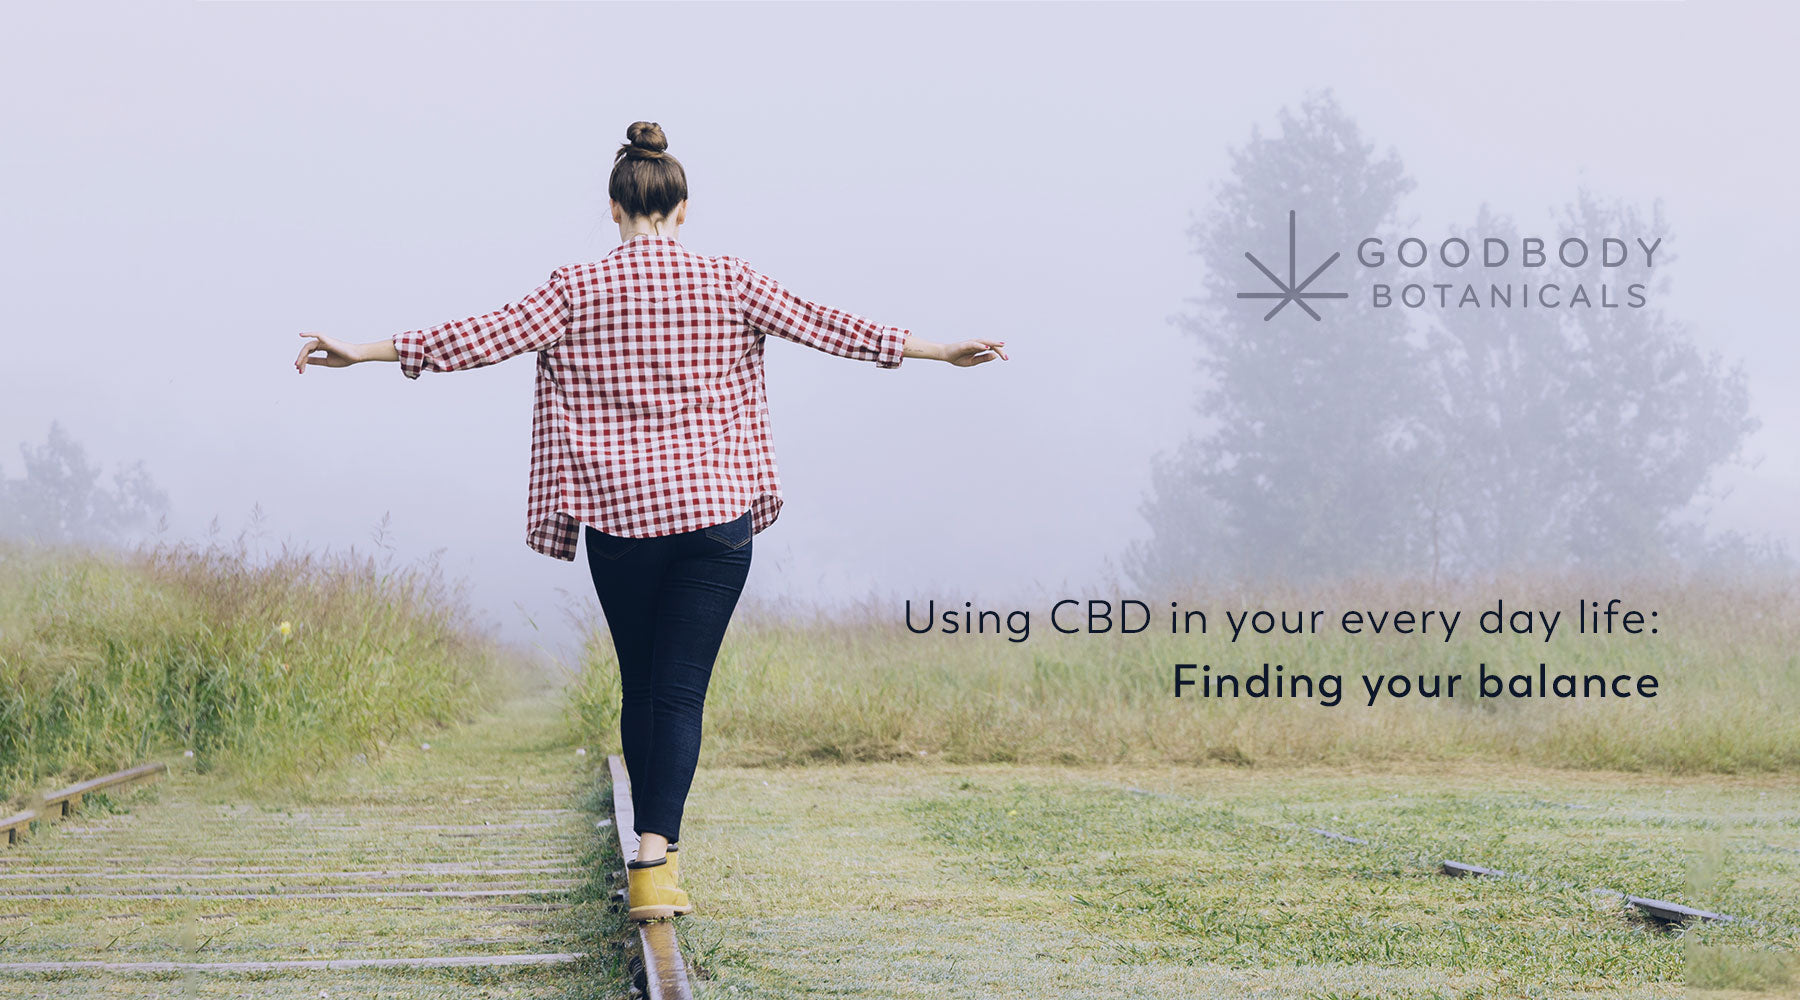 Using CBD in your every day life